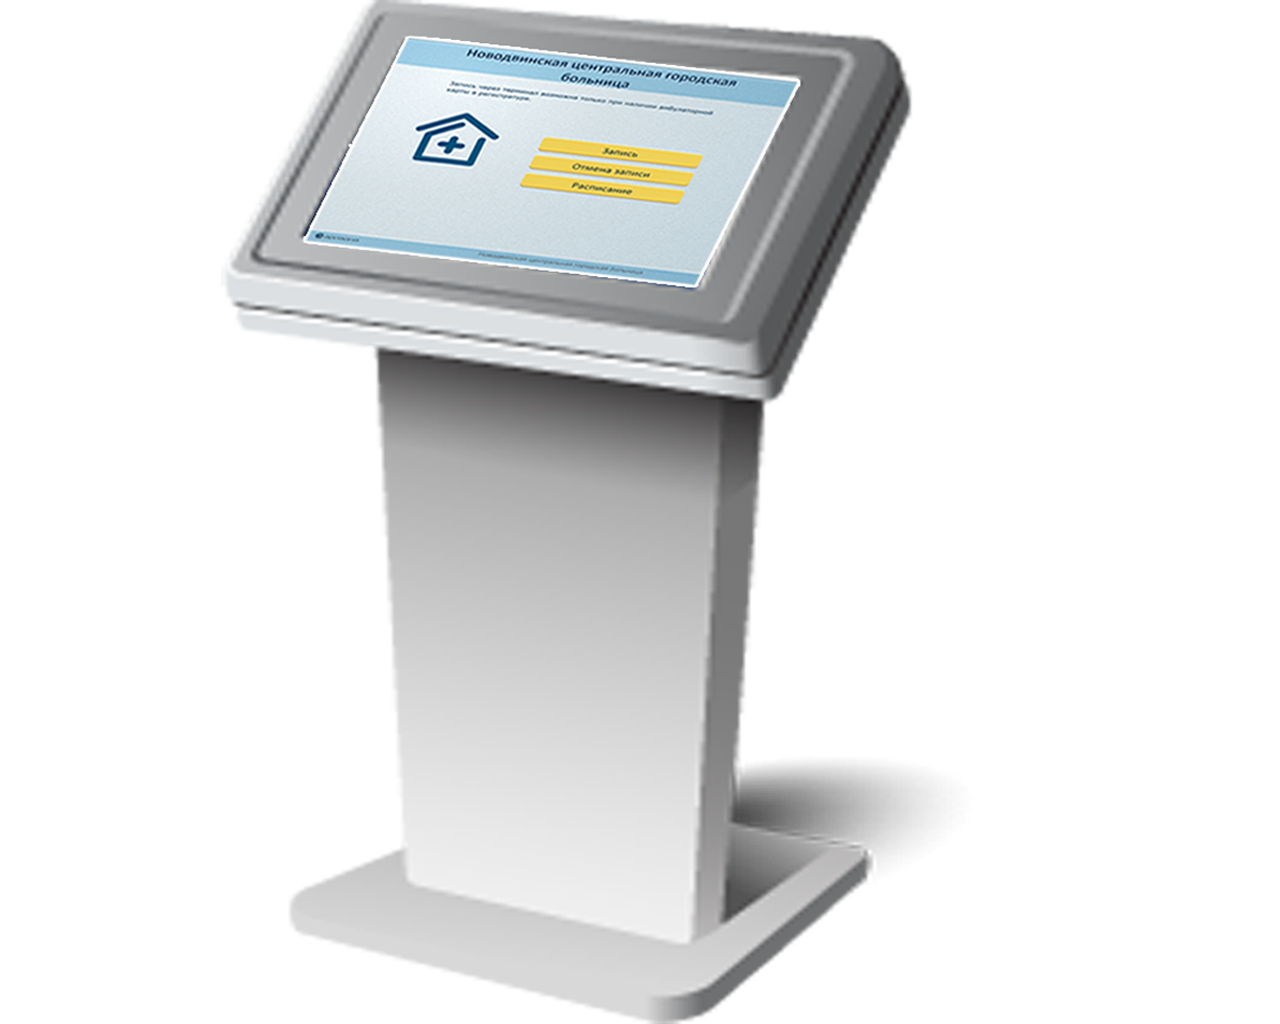 touch screen kiosk-256